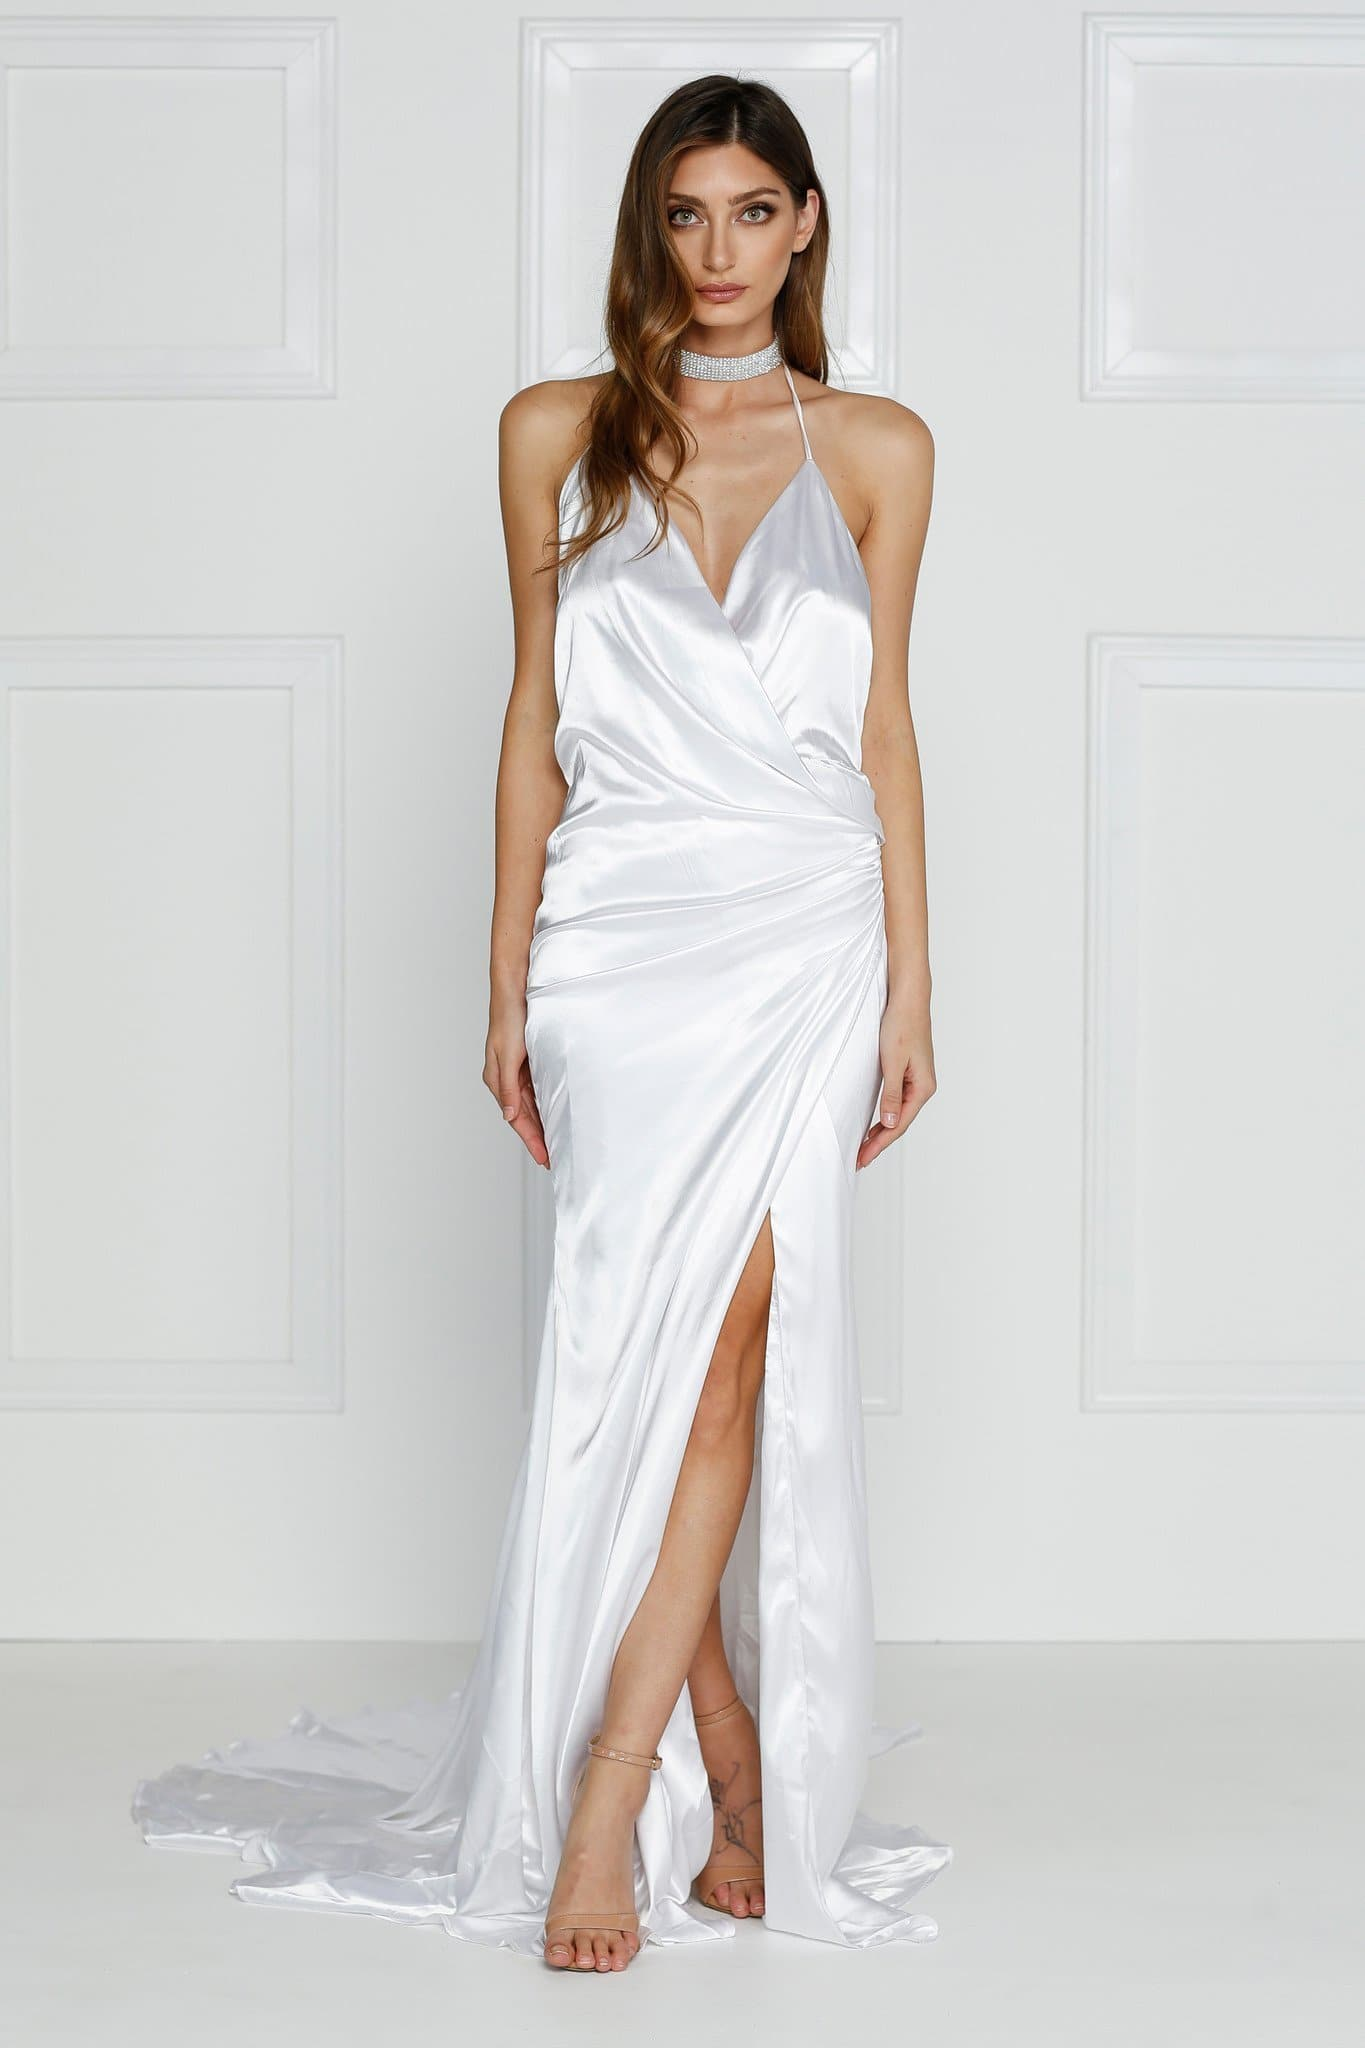 Guinevere Luxe Satin Gown - White V Neck Dress in Double Satin Fabric